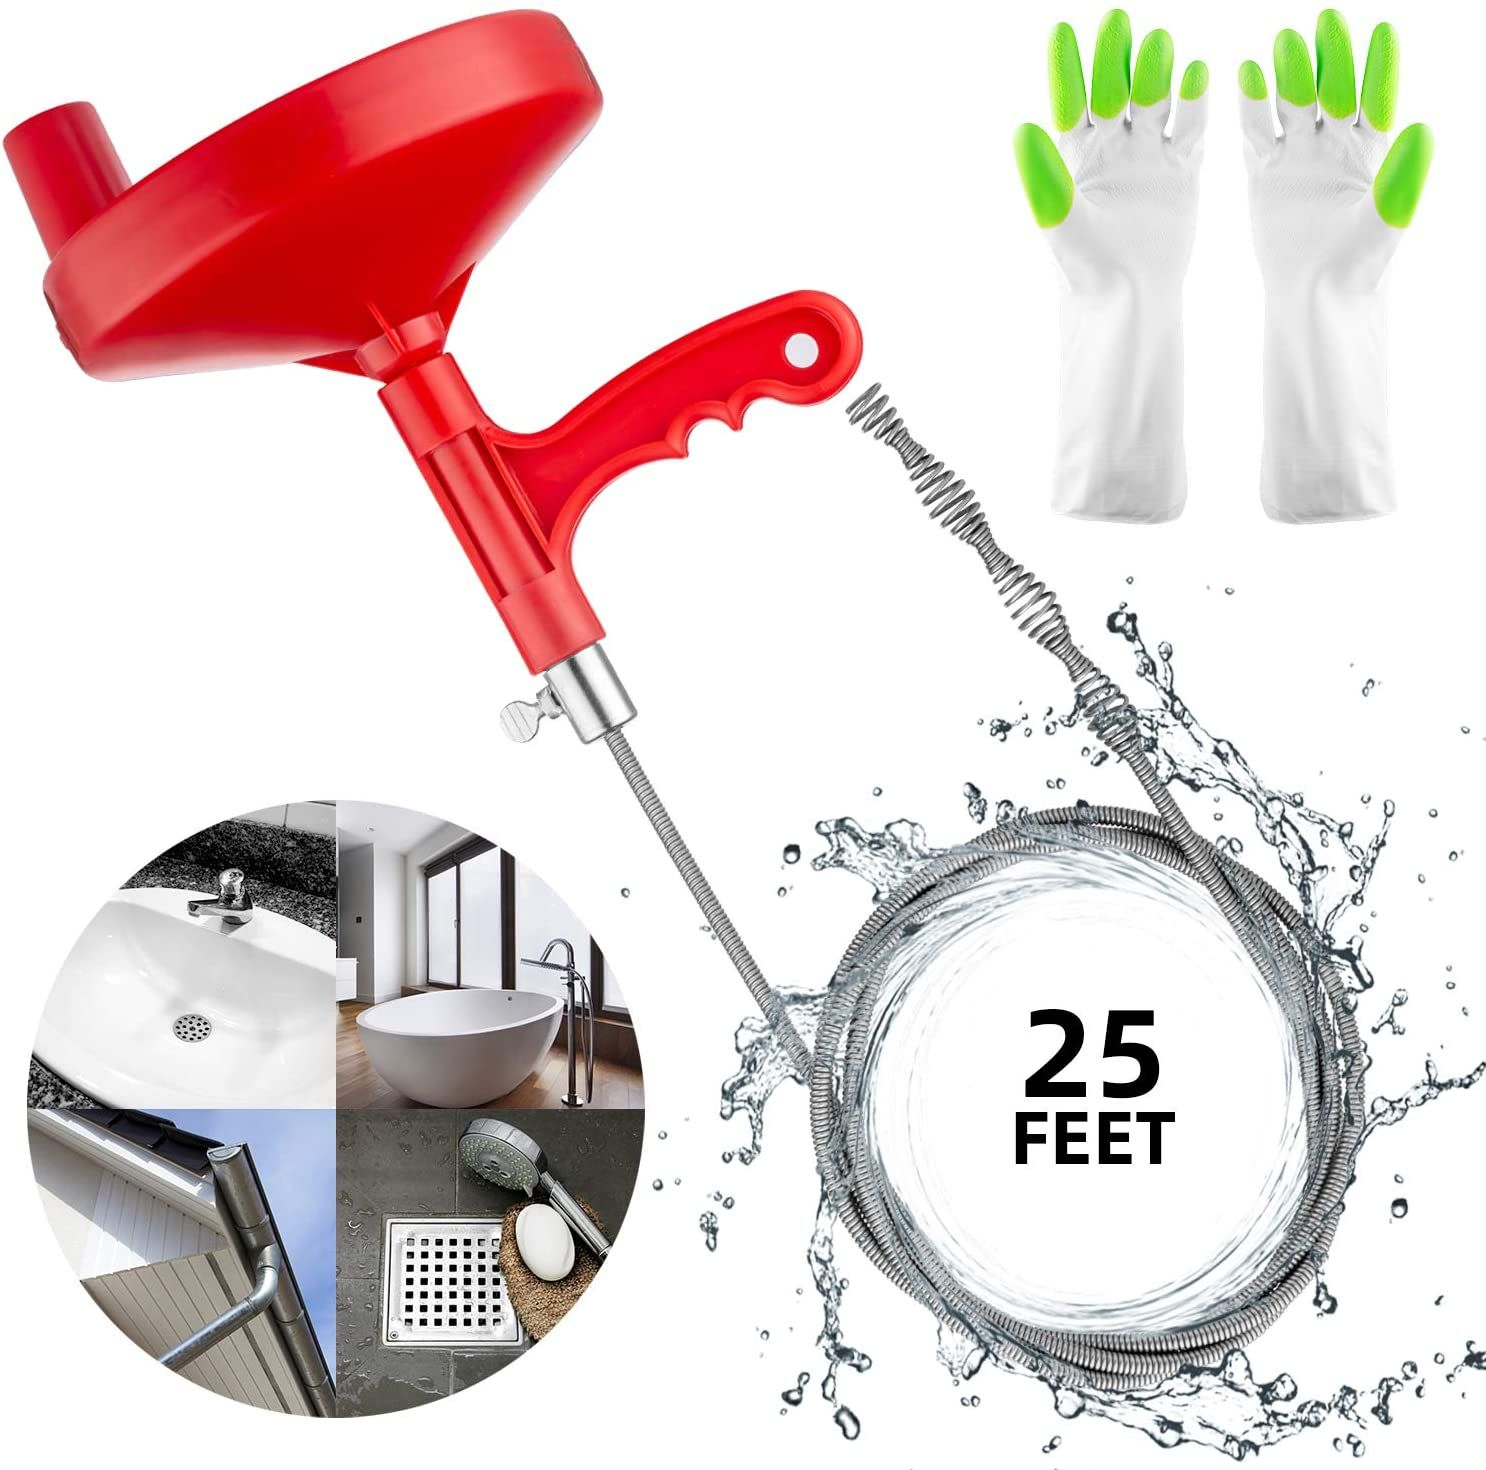 Great for unclogging sinks on your own! The instruction